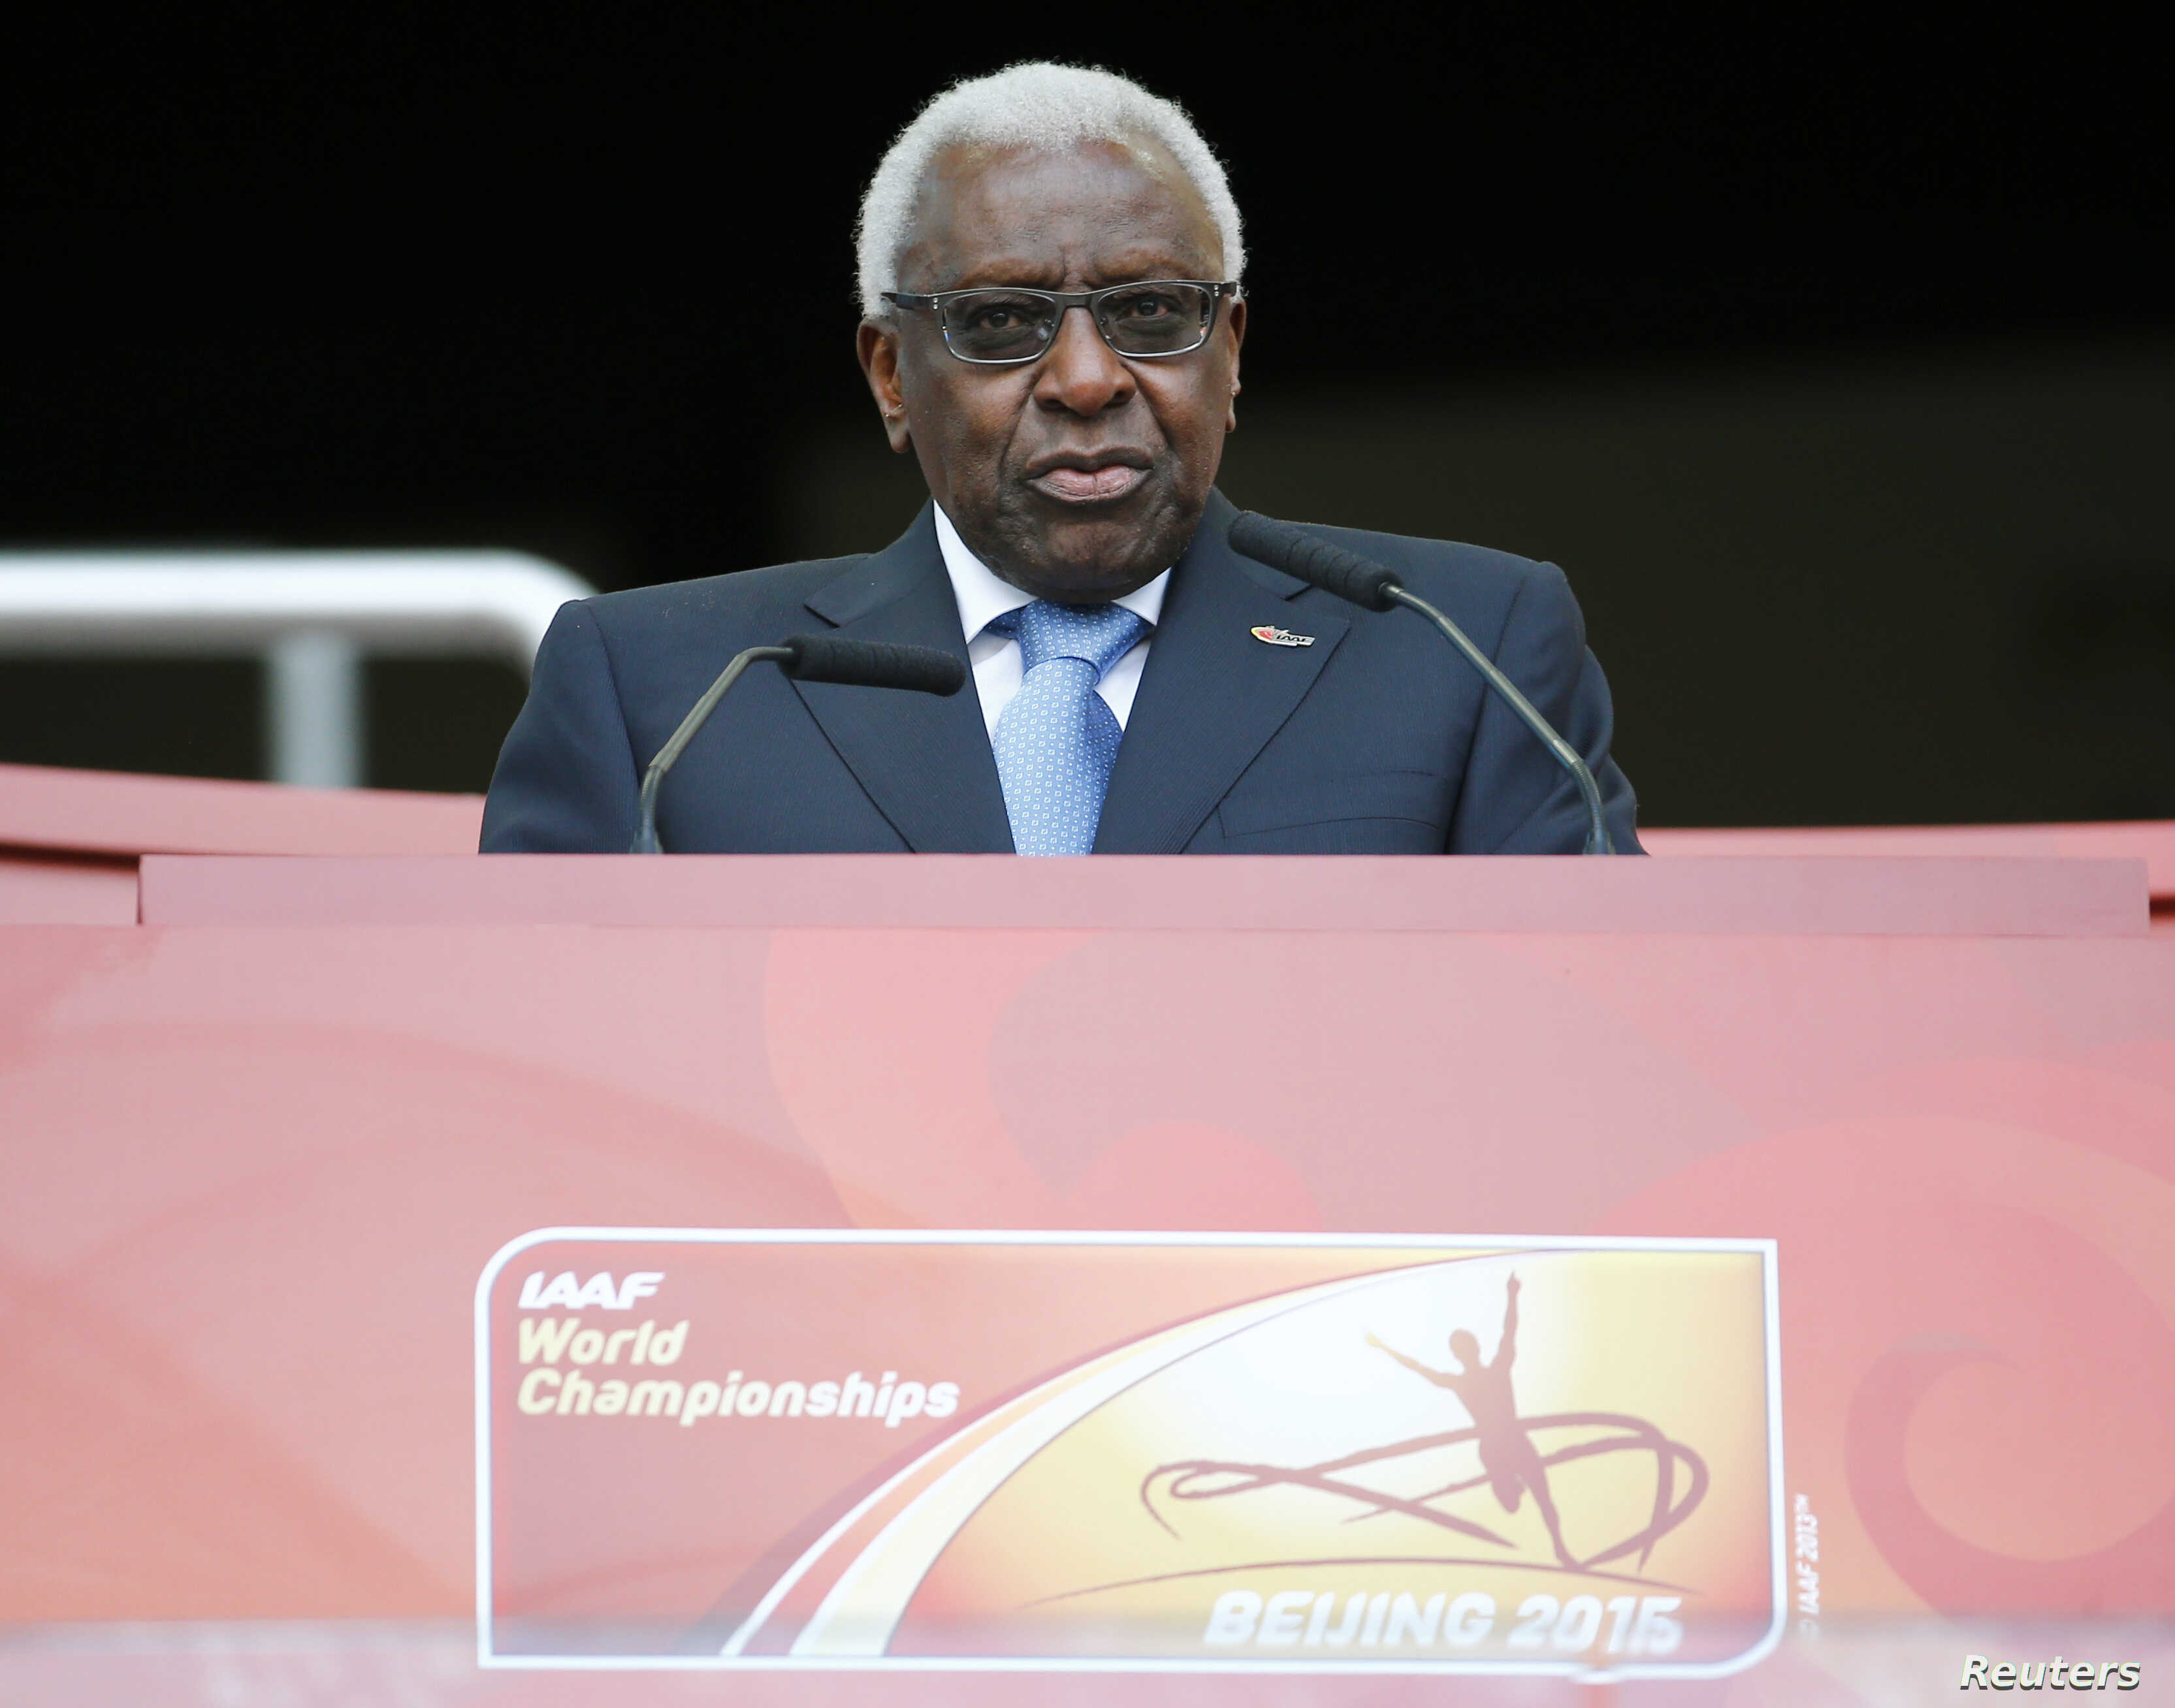 IAAF President Lamine Diack speaks during the opening ceremony of the 15th IAAF World Championships at the National Stadium in Beijing, China, Aug. 22, 2015.